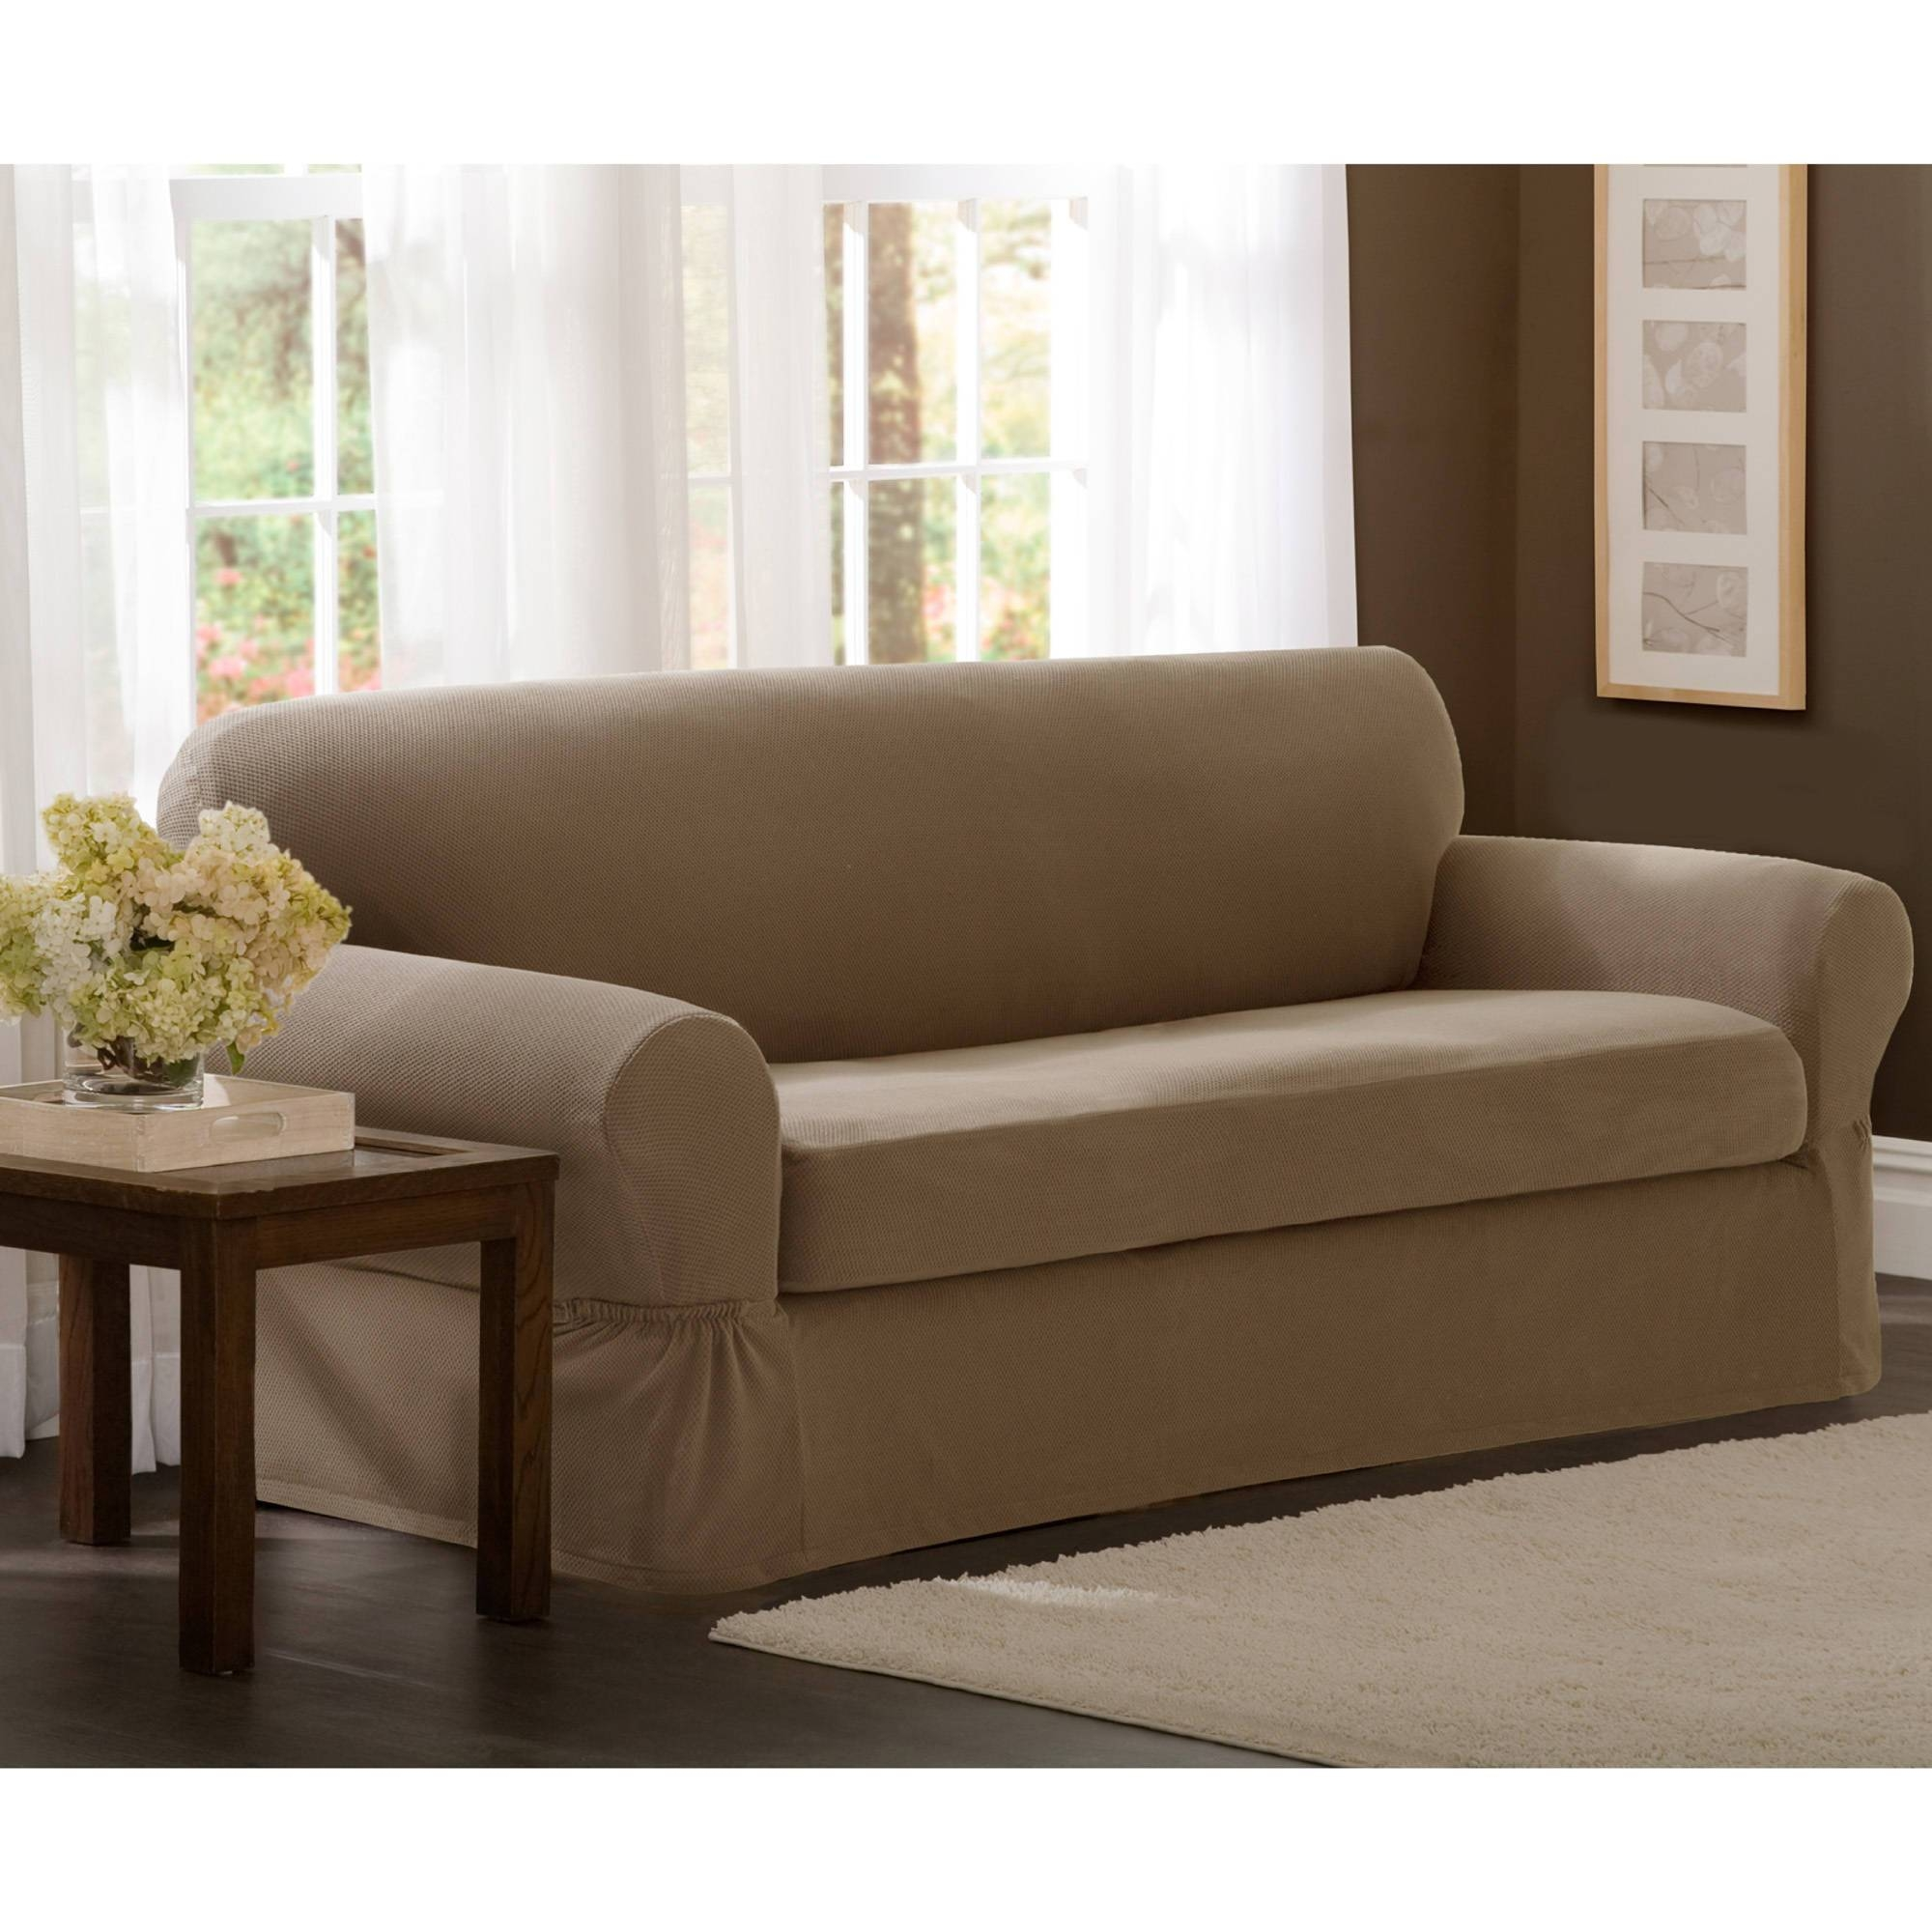 Maytex Stretch 2-Piece Sofa Slipcover - Walmart in Stretch Slipcovers For Sofas (Image 8 of 15)